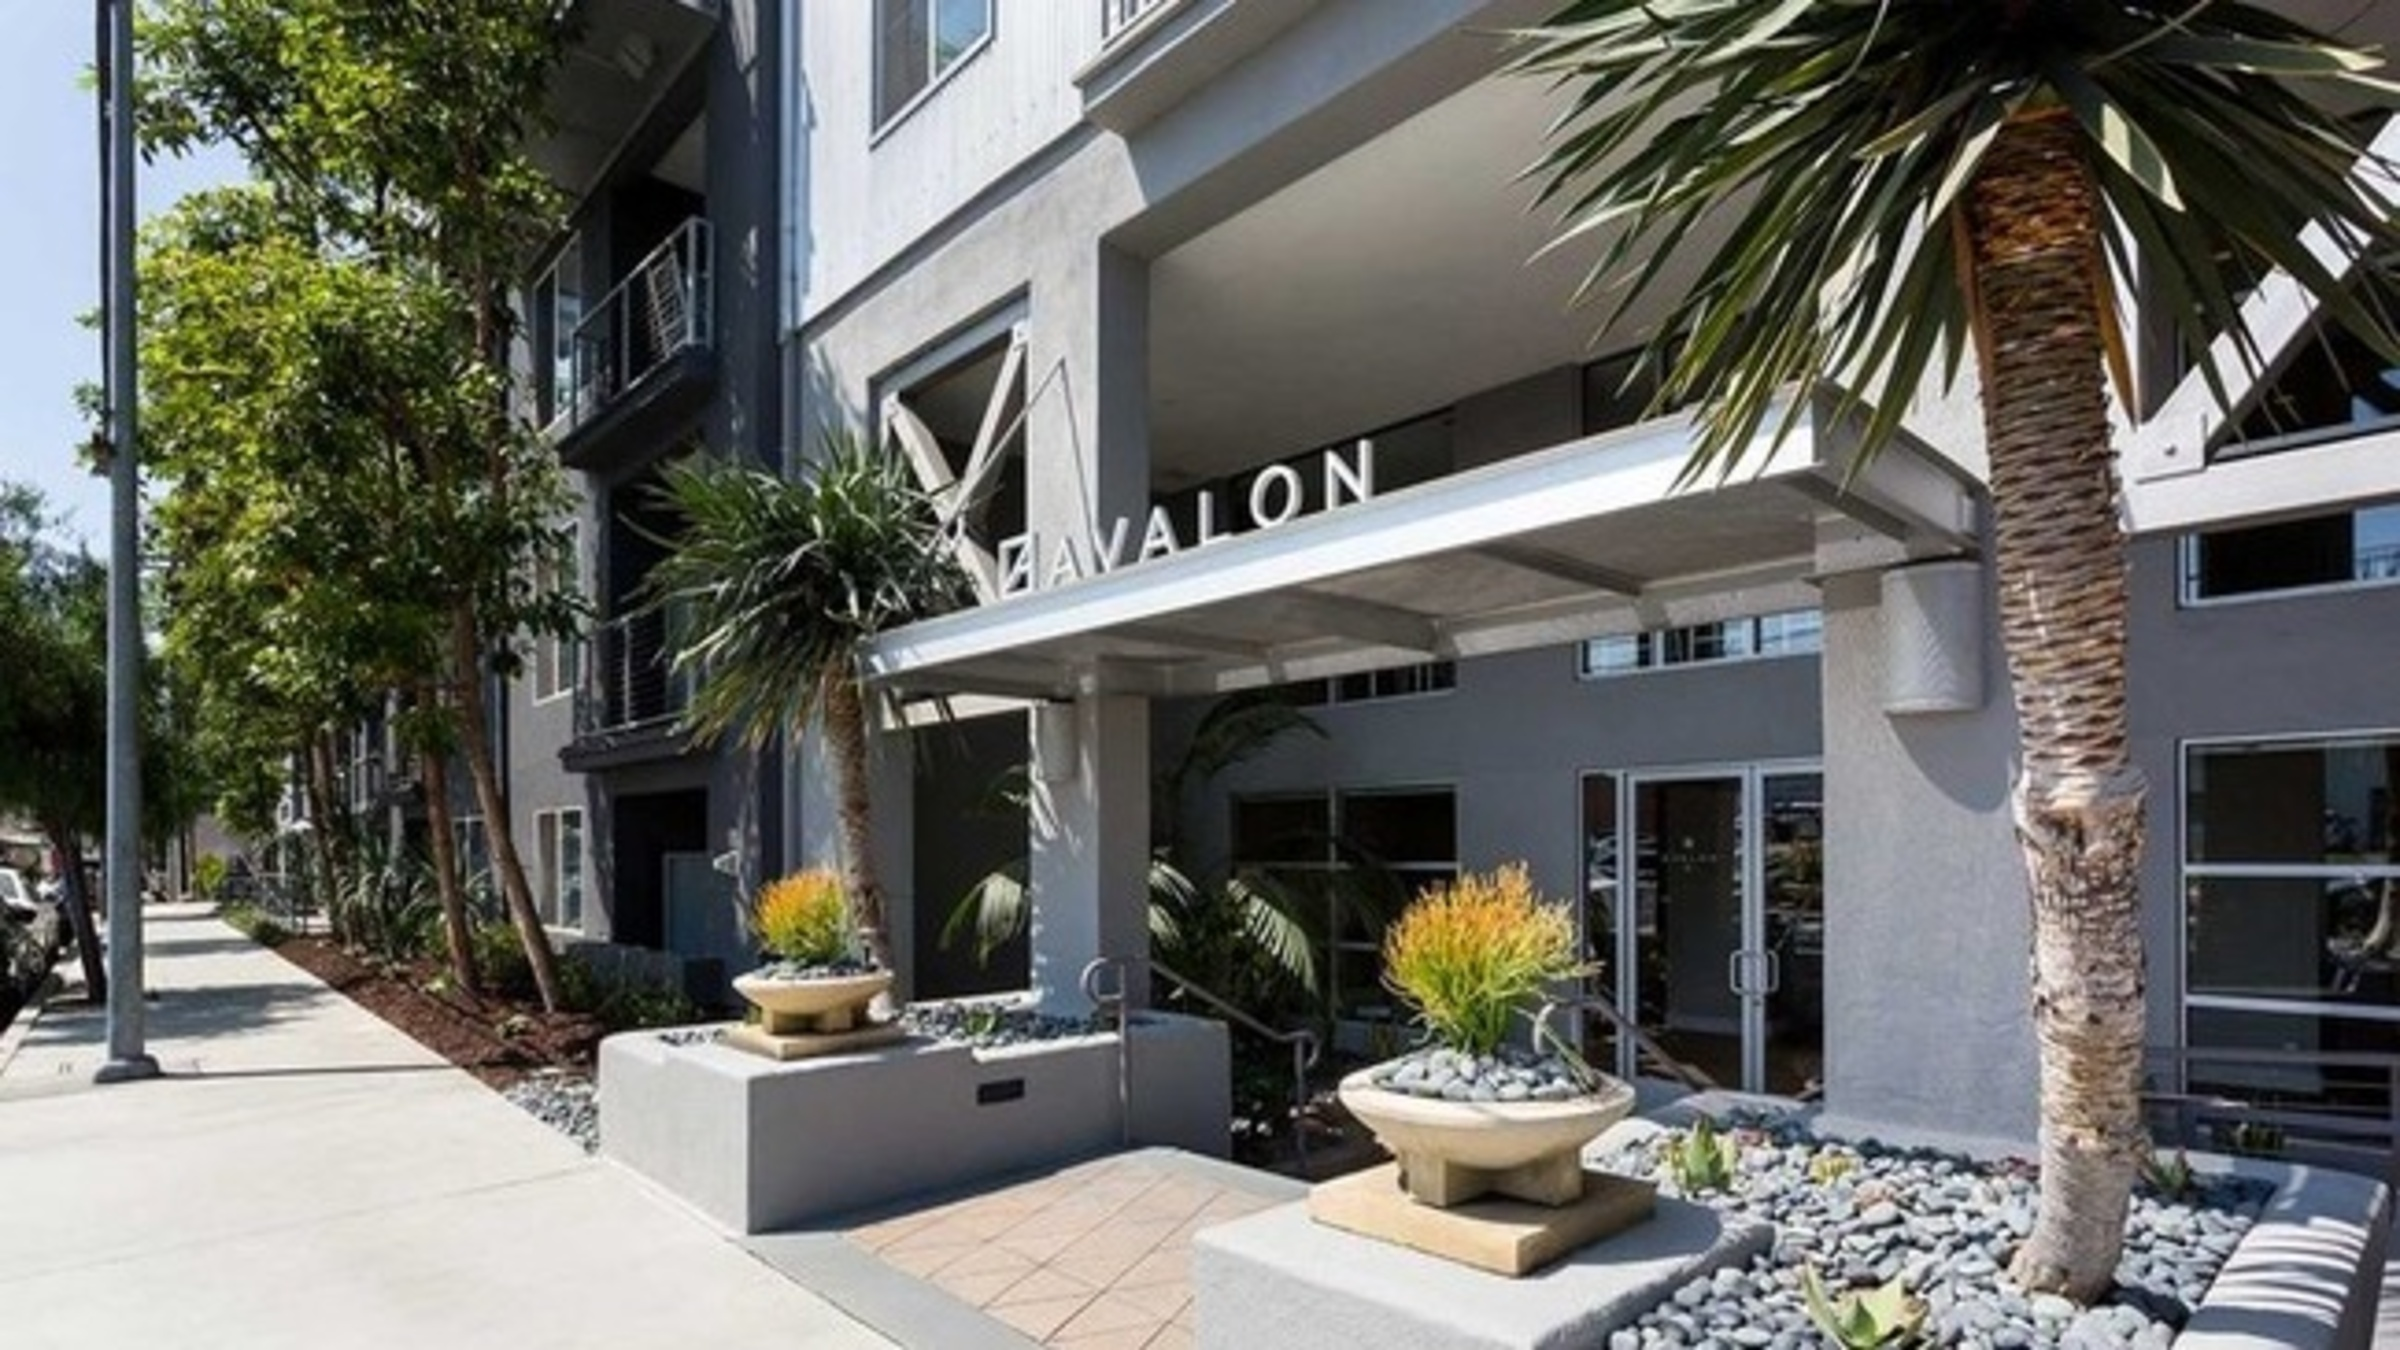 Avalon Playa Vista